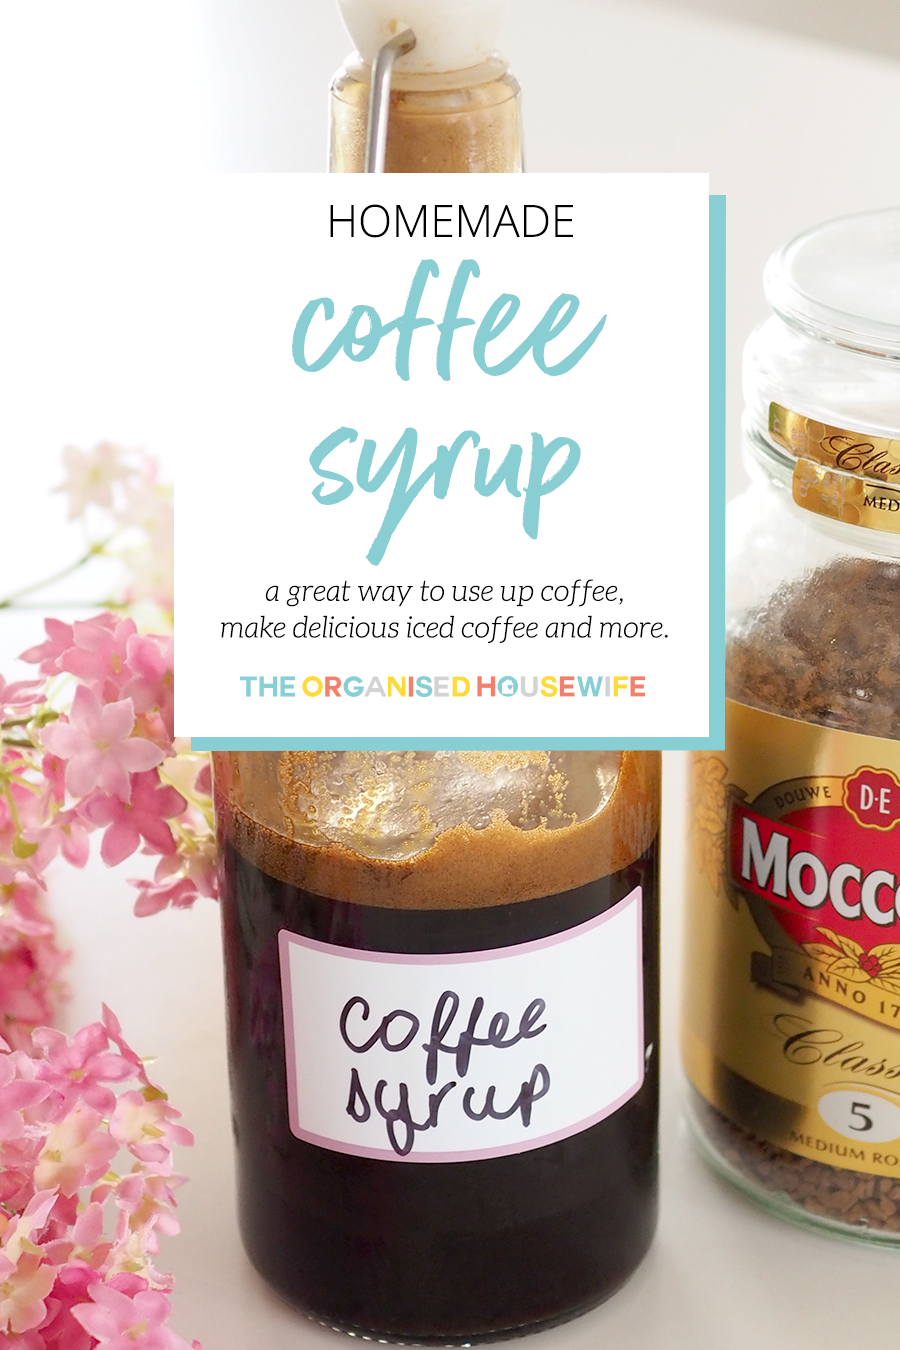 Homemade Coffee Syrup Recipe (With images) Homemade